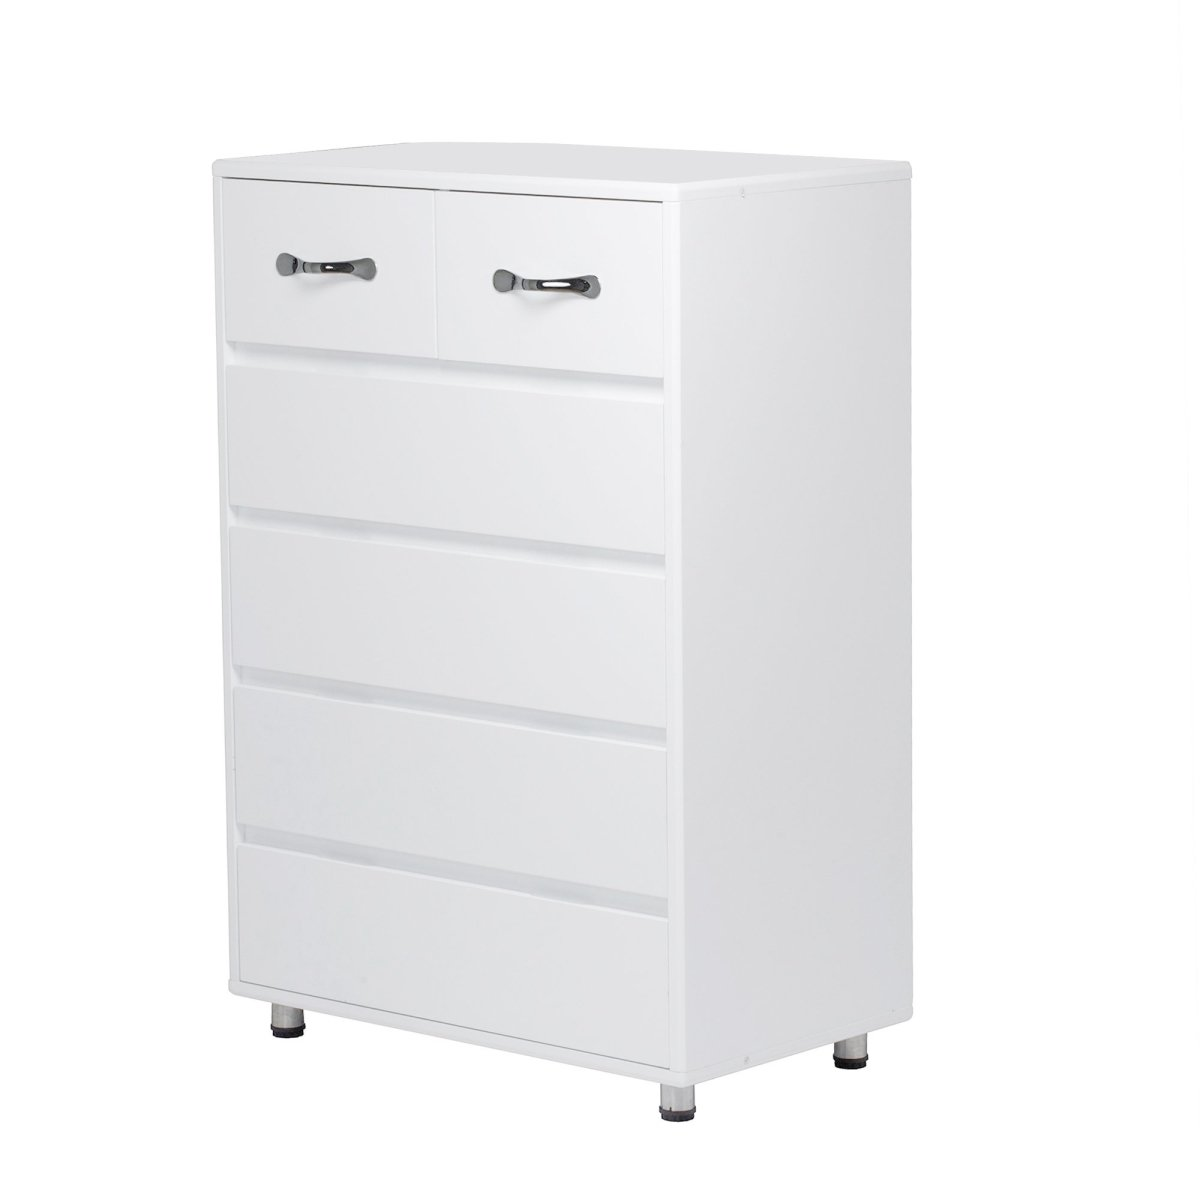 Schneider 6 Drawers Sideboard